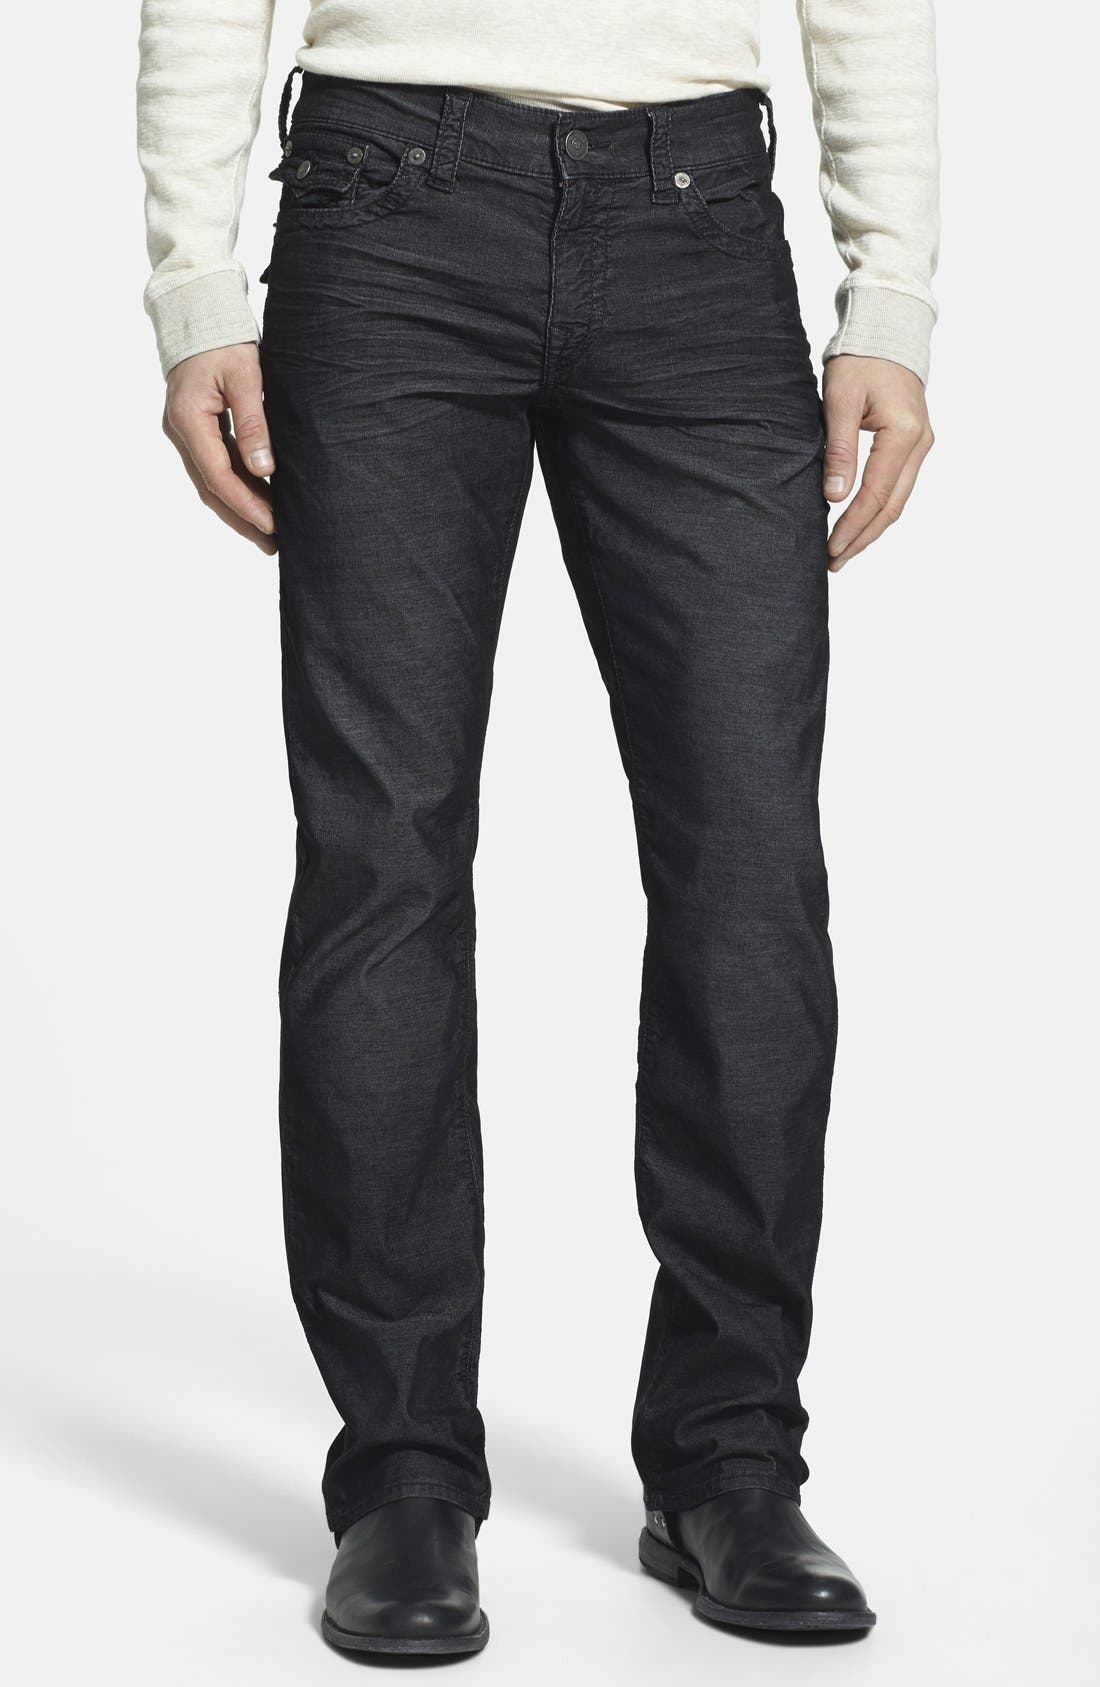 True Religion Brand Jeans 'Ricky' Relaxed Straight Leg Corduroy Pants